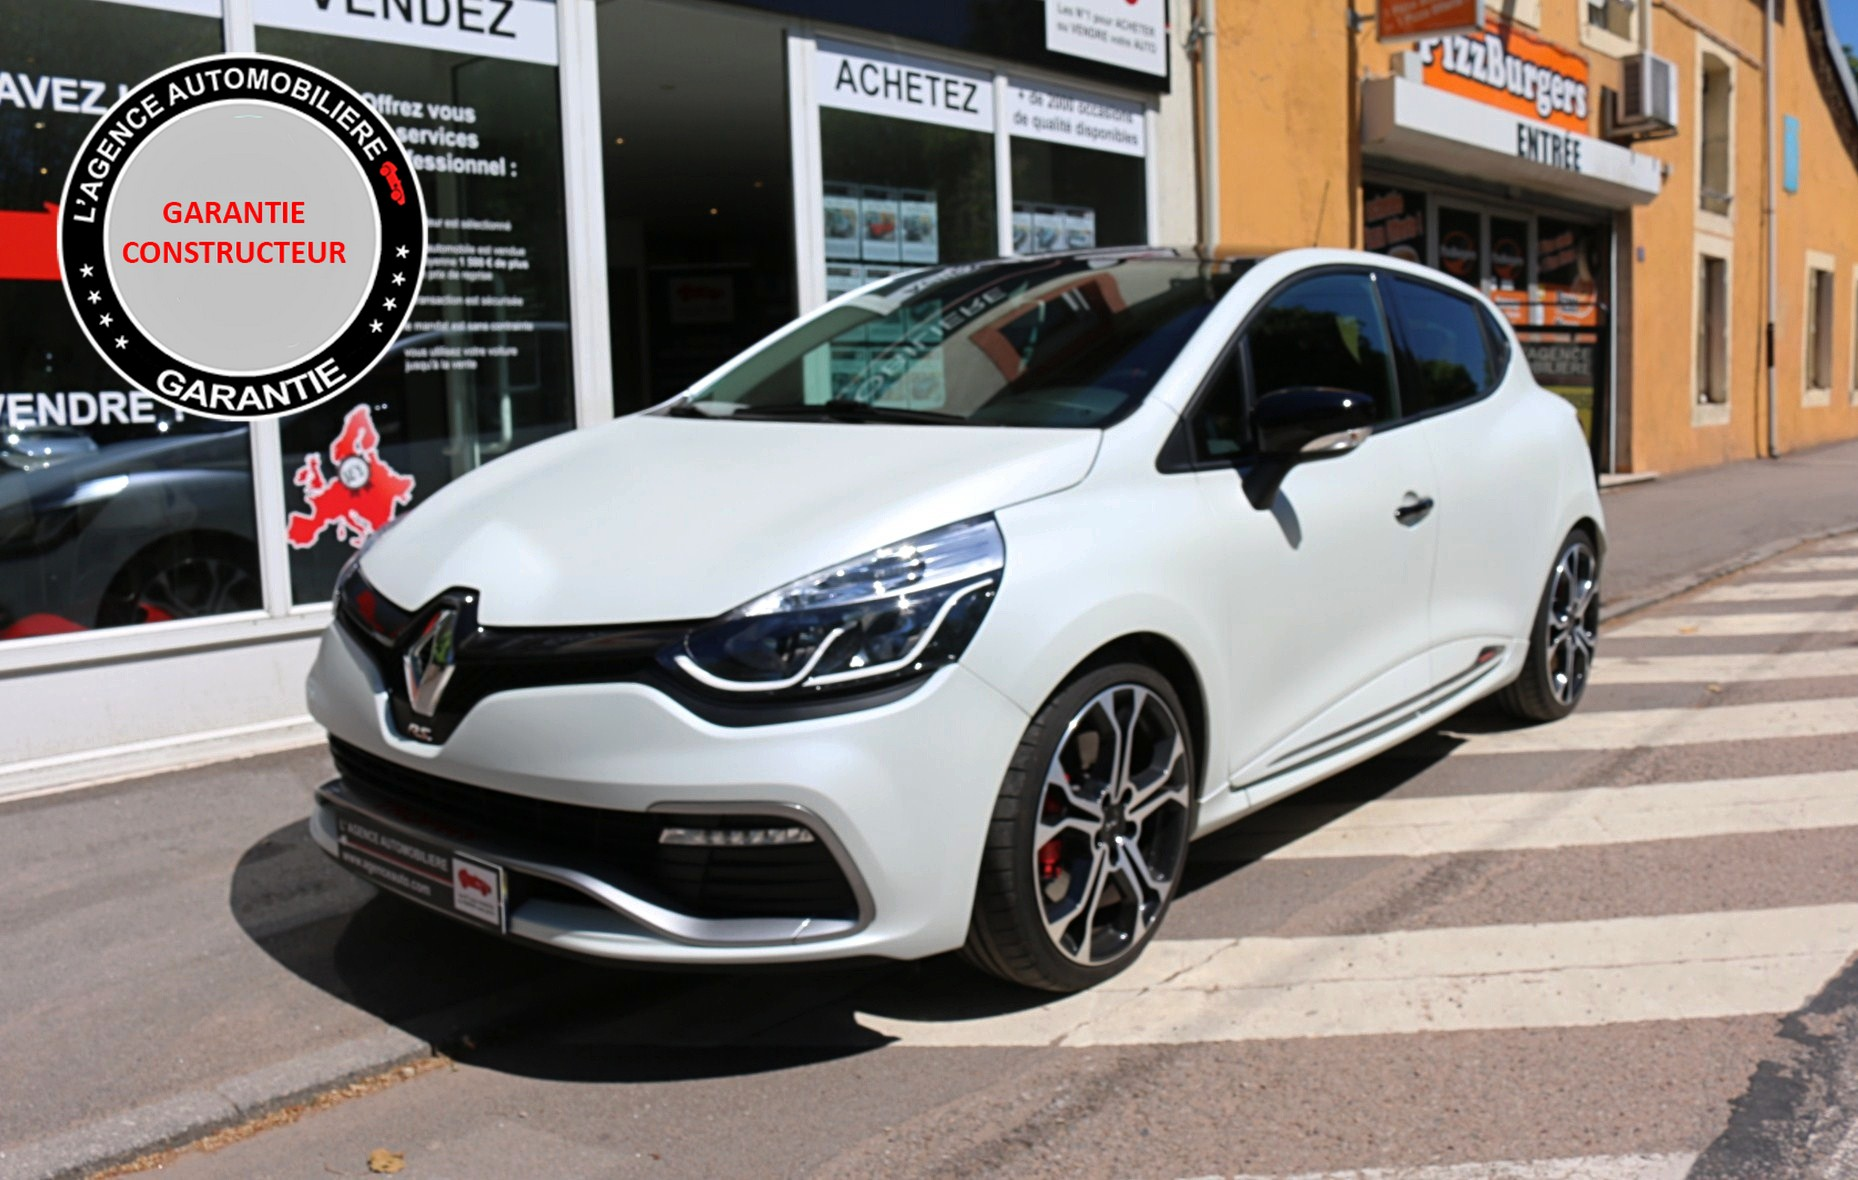 renault clio rs trophy 1 6 turbo 220 edc occasion epinal pas cher voiture occasion vosges 88000. Black Bedroom Furniture Sets. Home Design Ideas